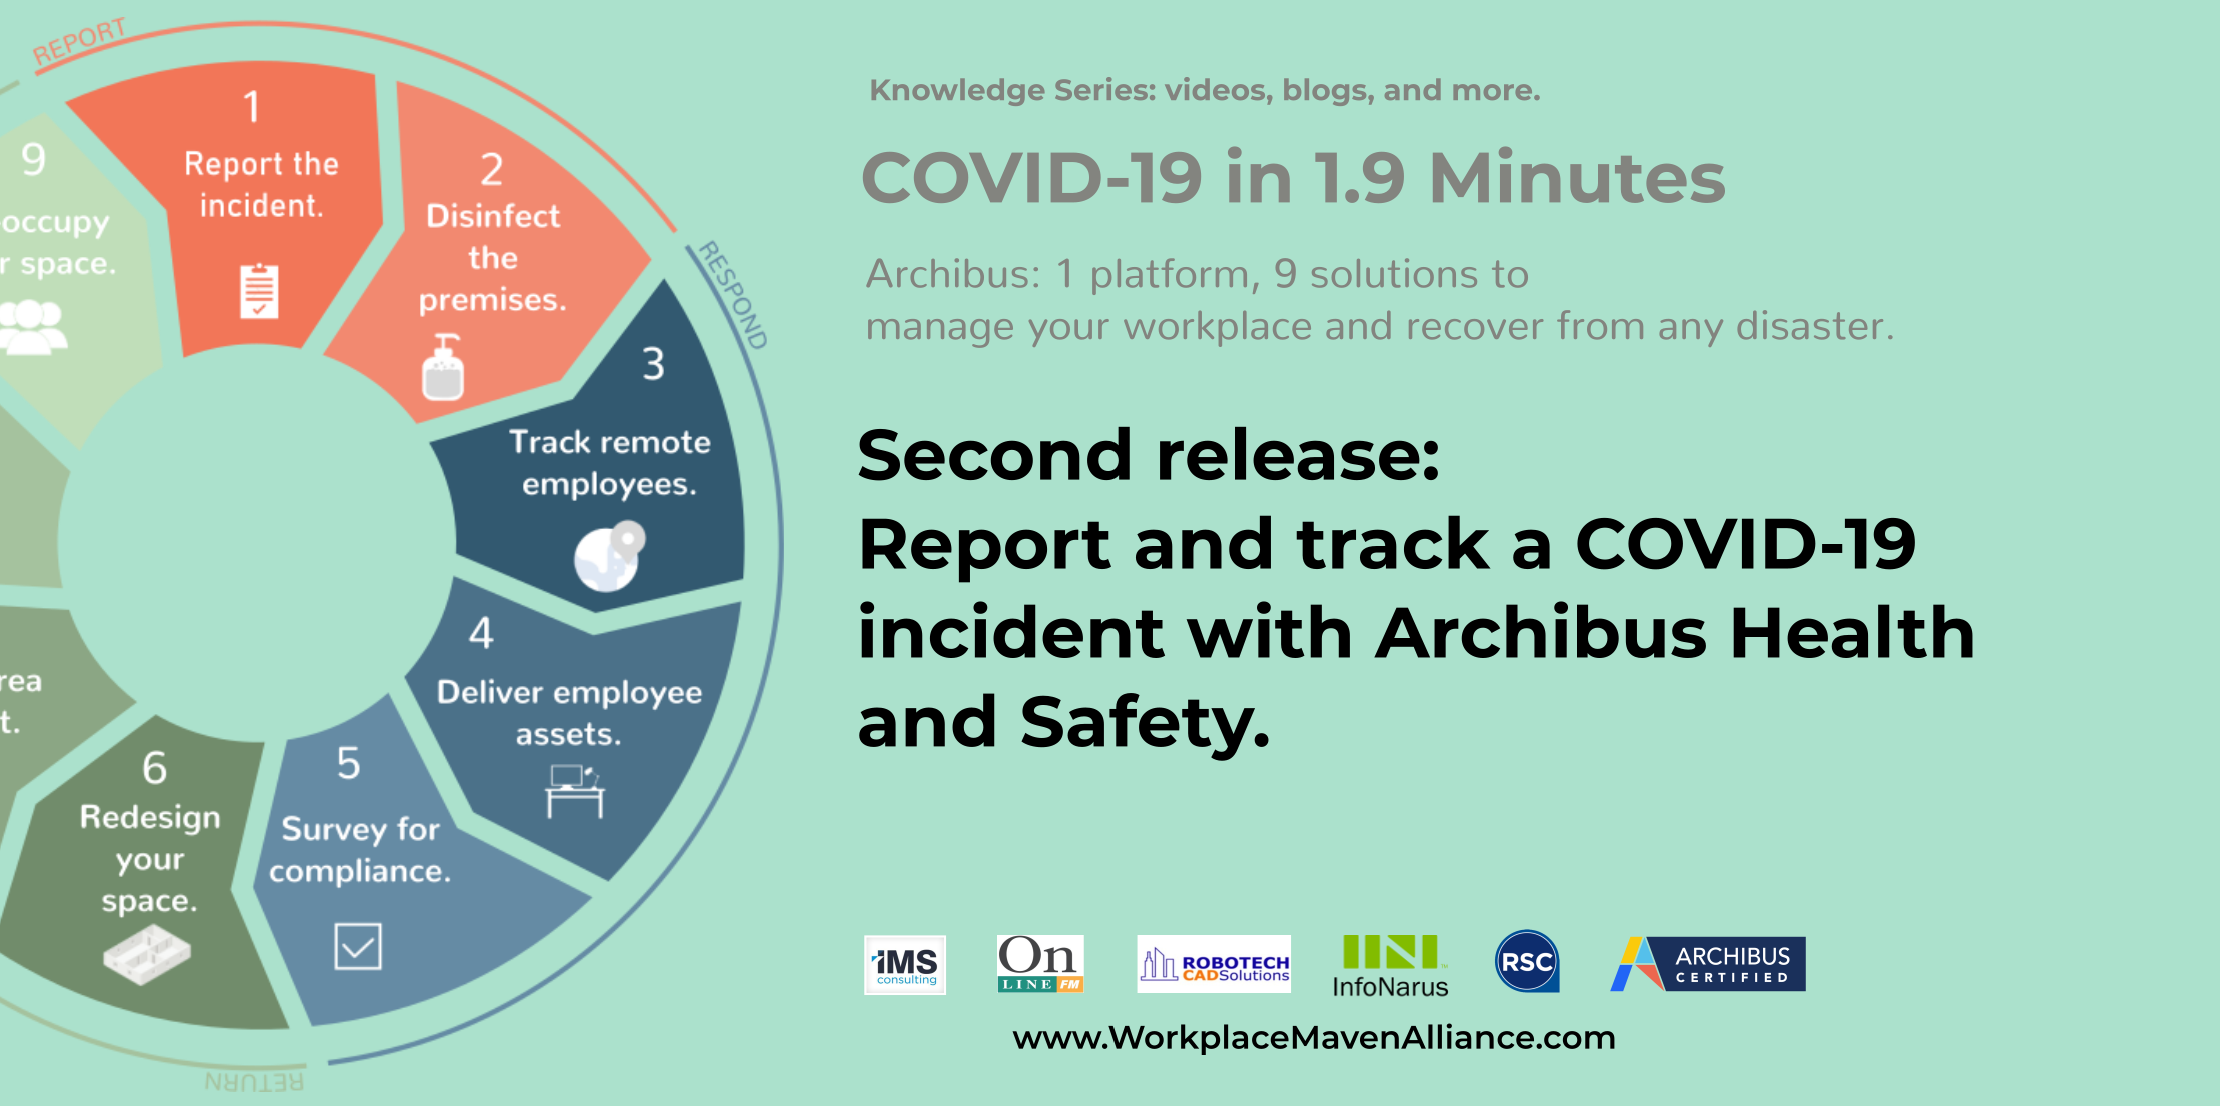 COVID-19 in 1.9 Minutes: how to track and contain incidents with Archibus Health and Safety